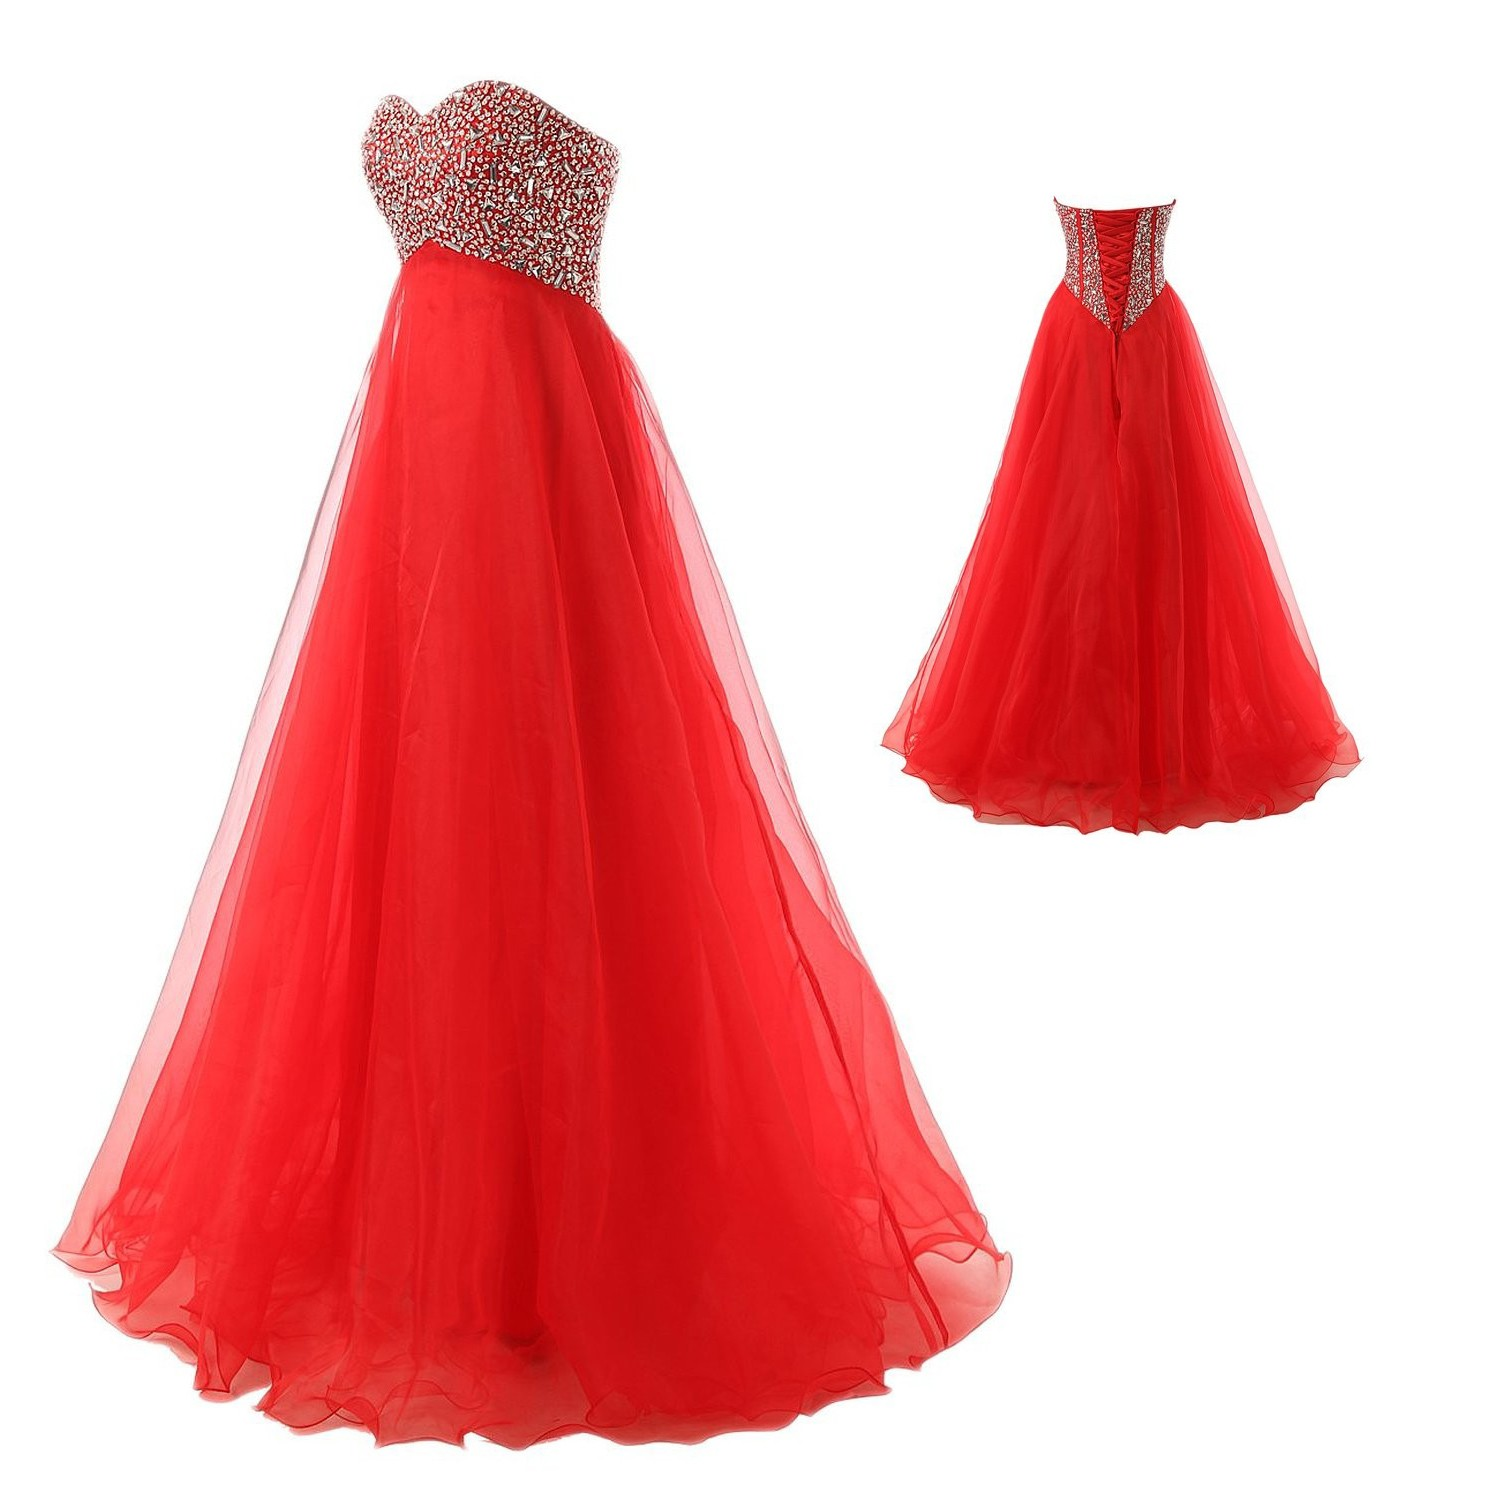 Elegant A-Line Sweetheart Knee Length Red Organze Evening/Prom Dress With Beading